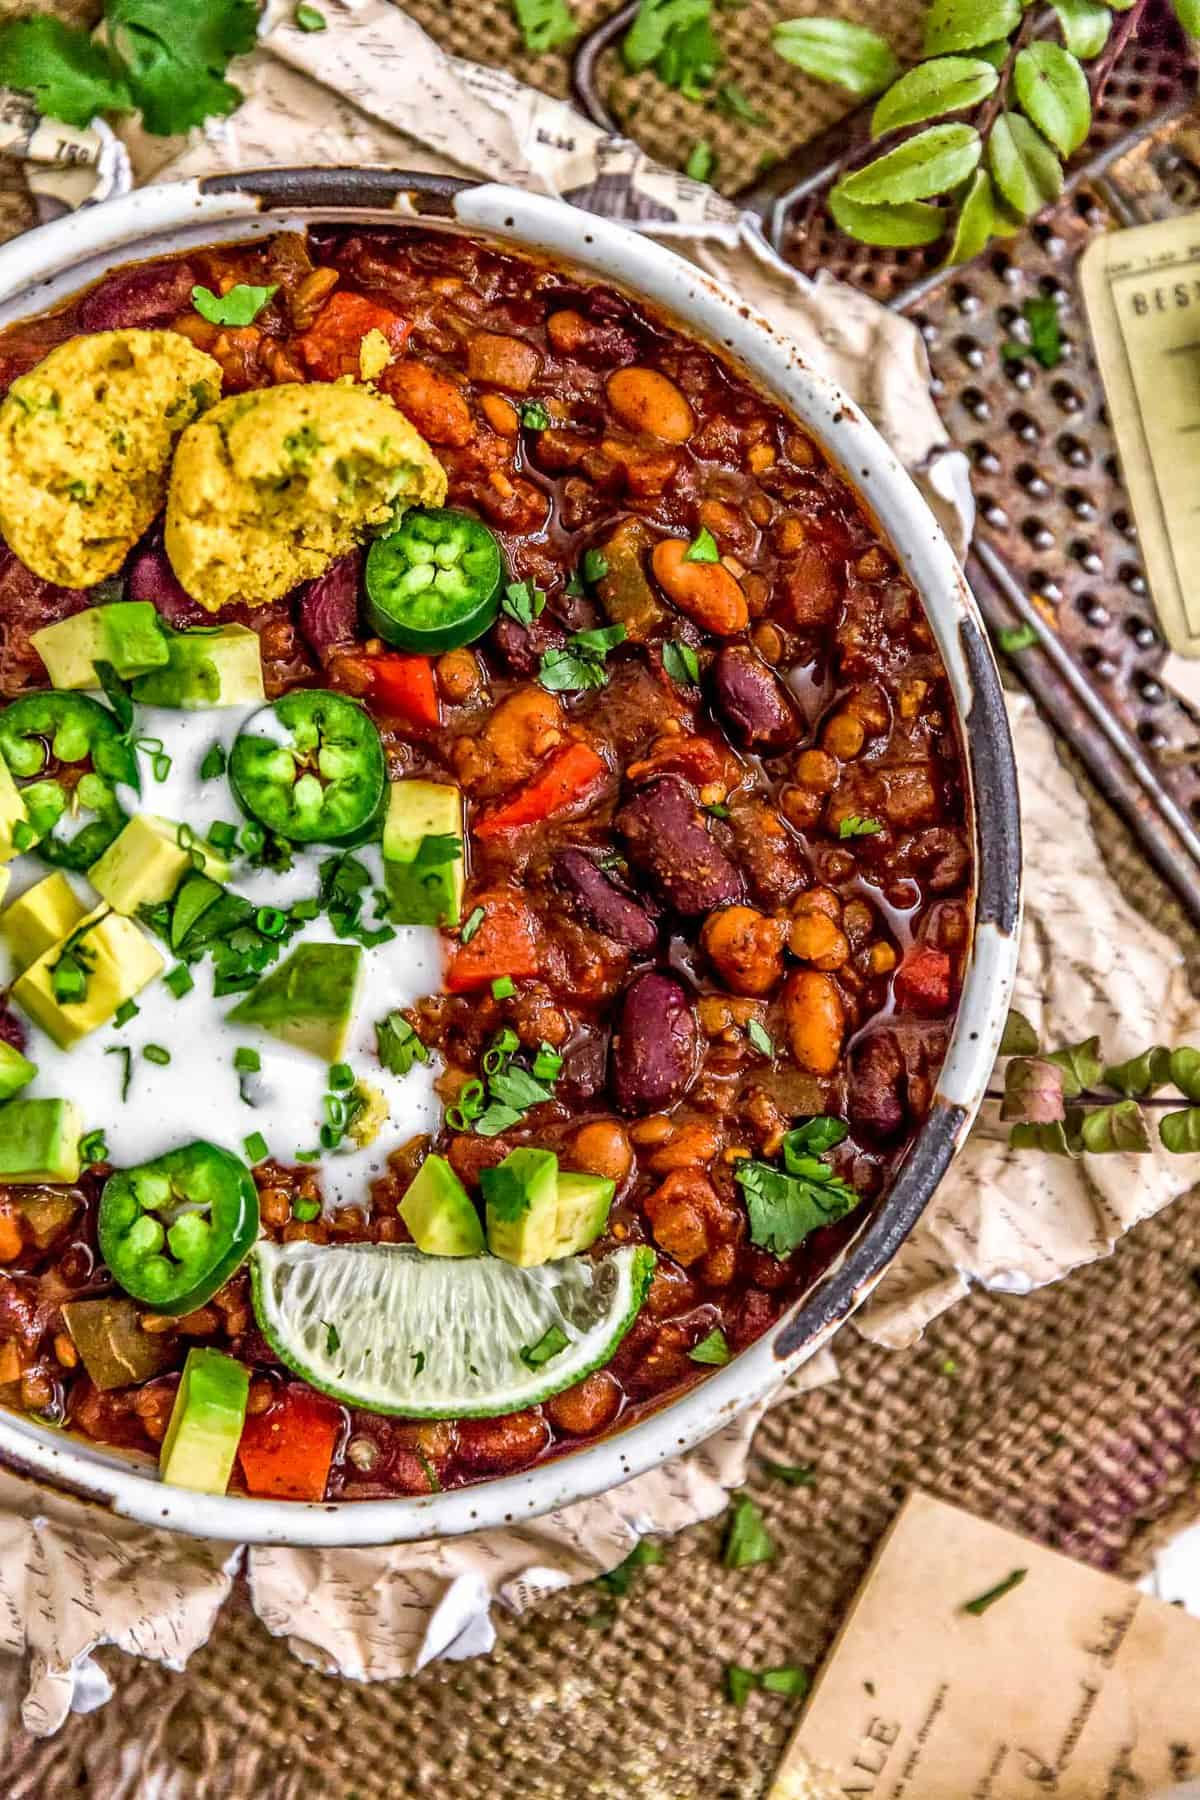 Vegan Three Bean Chili in a bowl